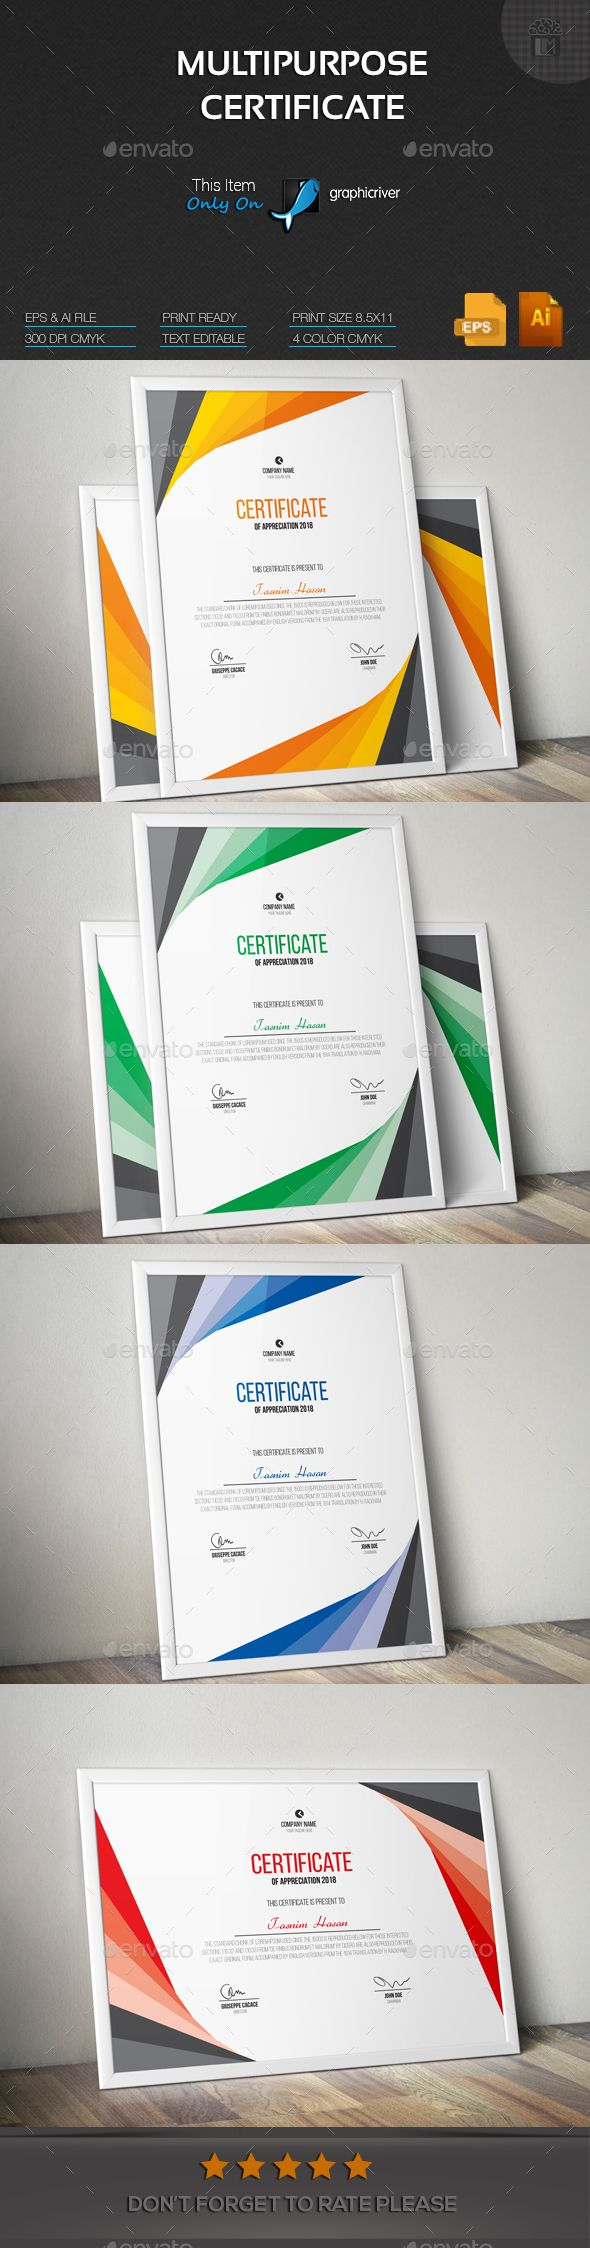 Multipurpose Certificate - #Certificates Stationery Download here: https://graphicriver.net/item/multipurpose-certificate/19552195?ref=alena994